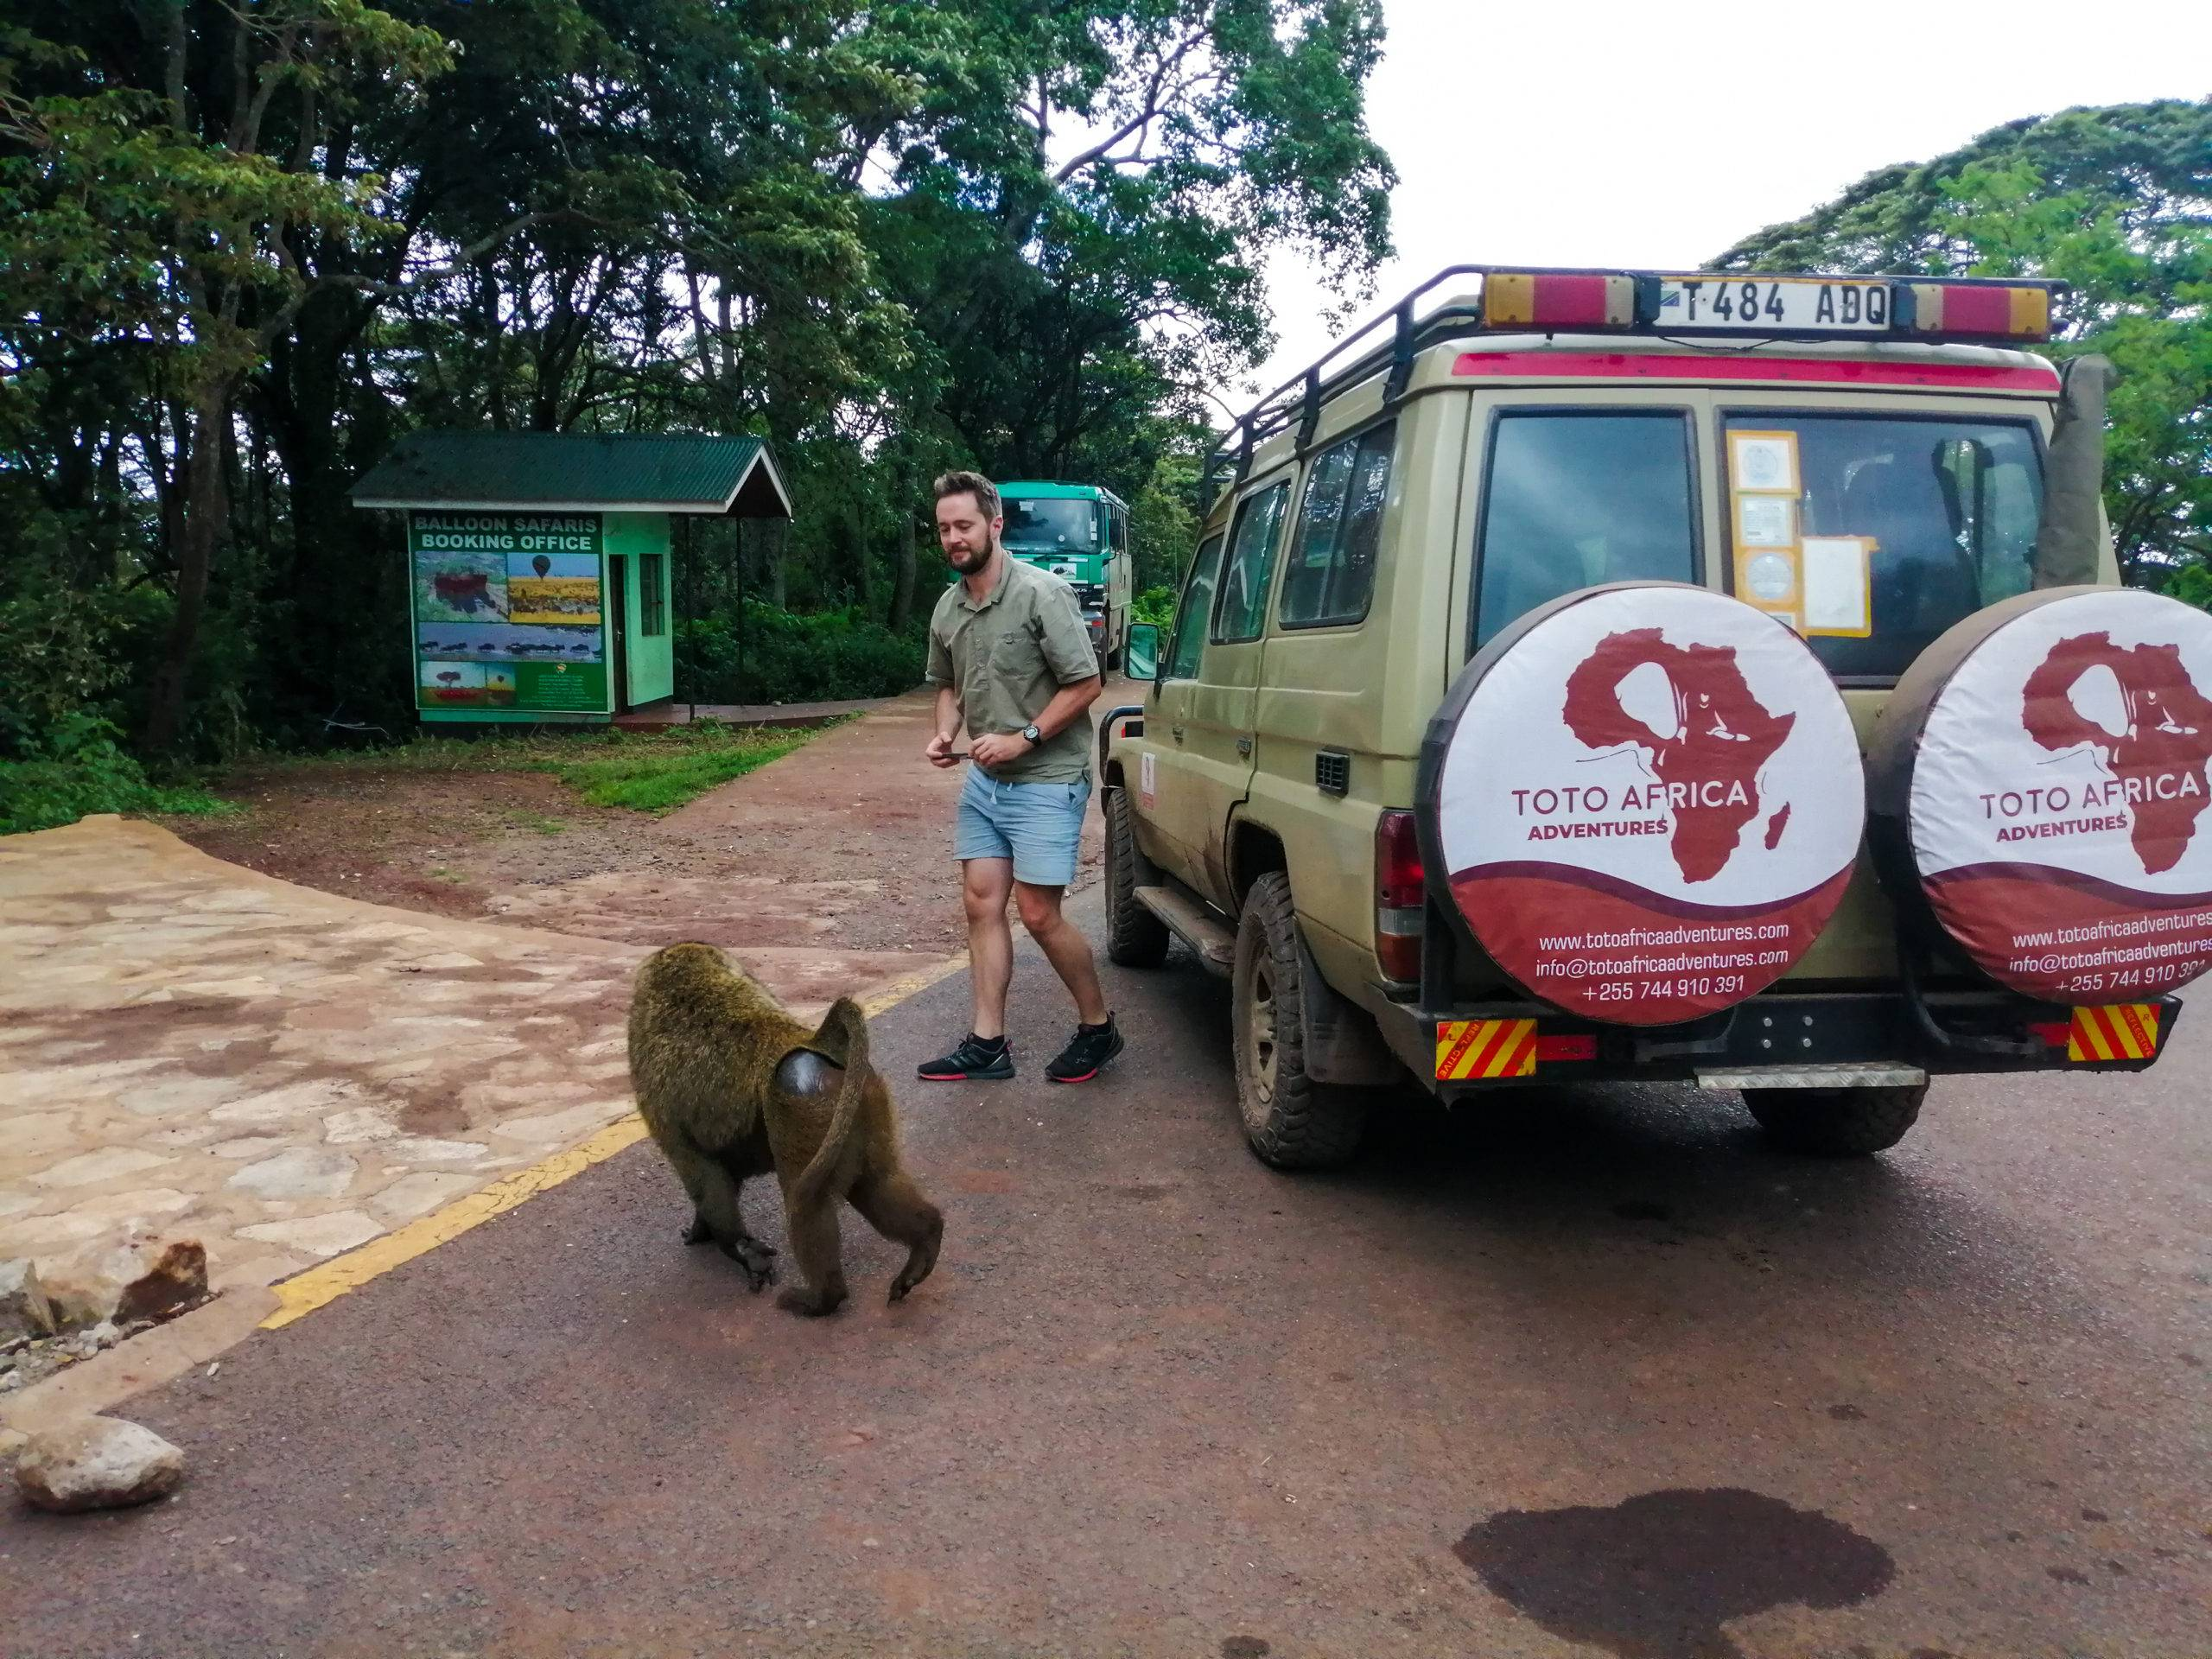 African Safari Holidays | Kilimanjaro climbing tours and packages | Tanzania Family Safari |Best and Recommended tour operator in Tanzania